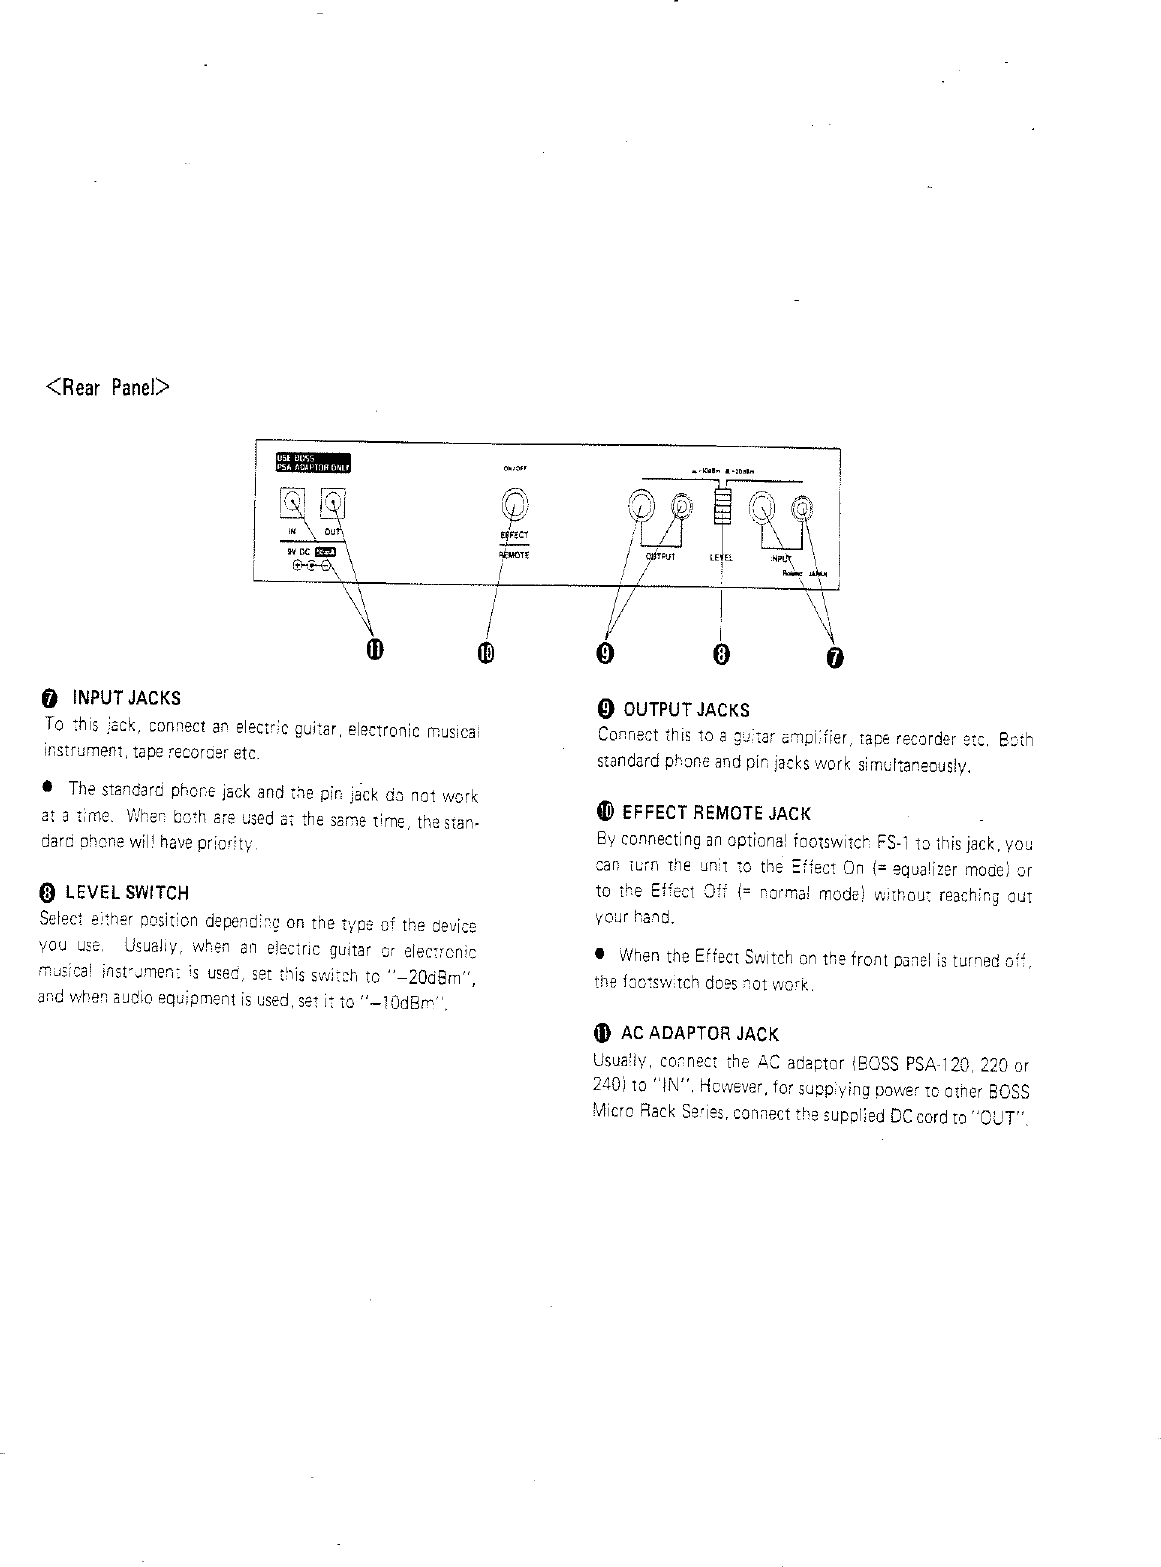 Boss Audio Systems Stereo Equalizer Rge 10 Users Manual Electric Guitar Input Jack Wiring Page 4 Of 8